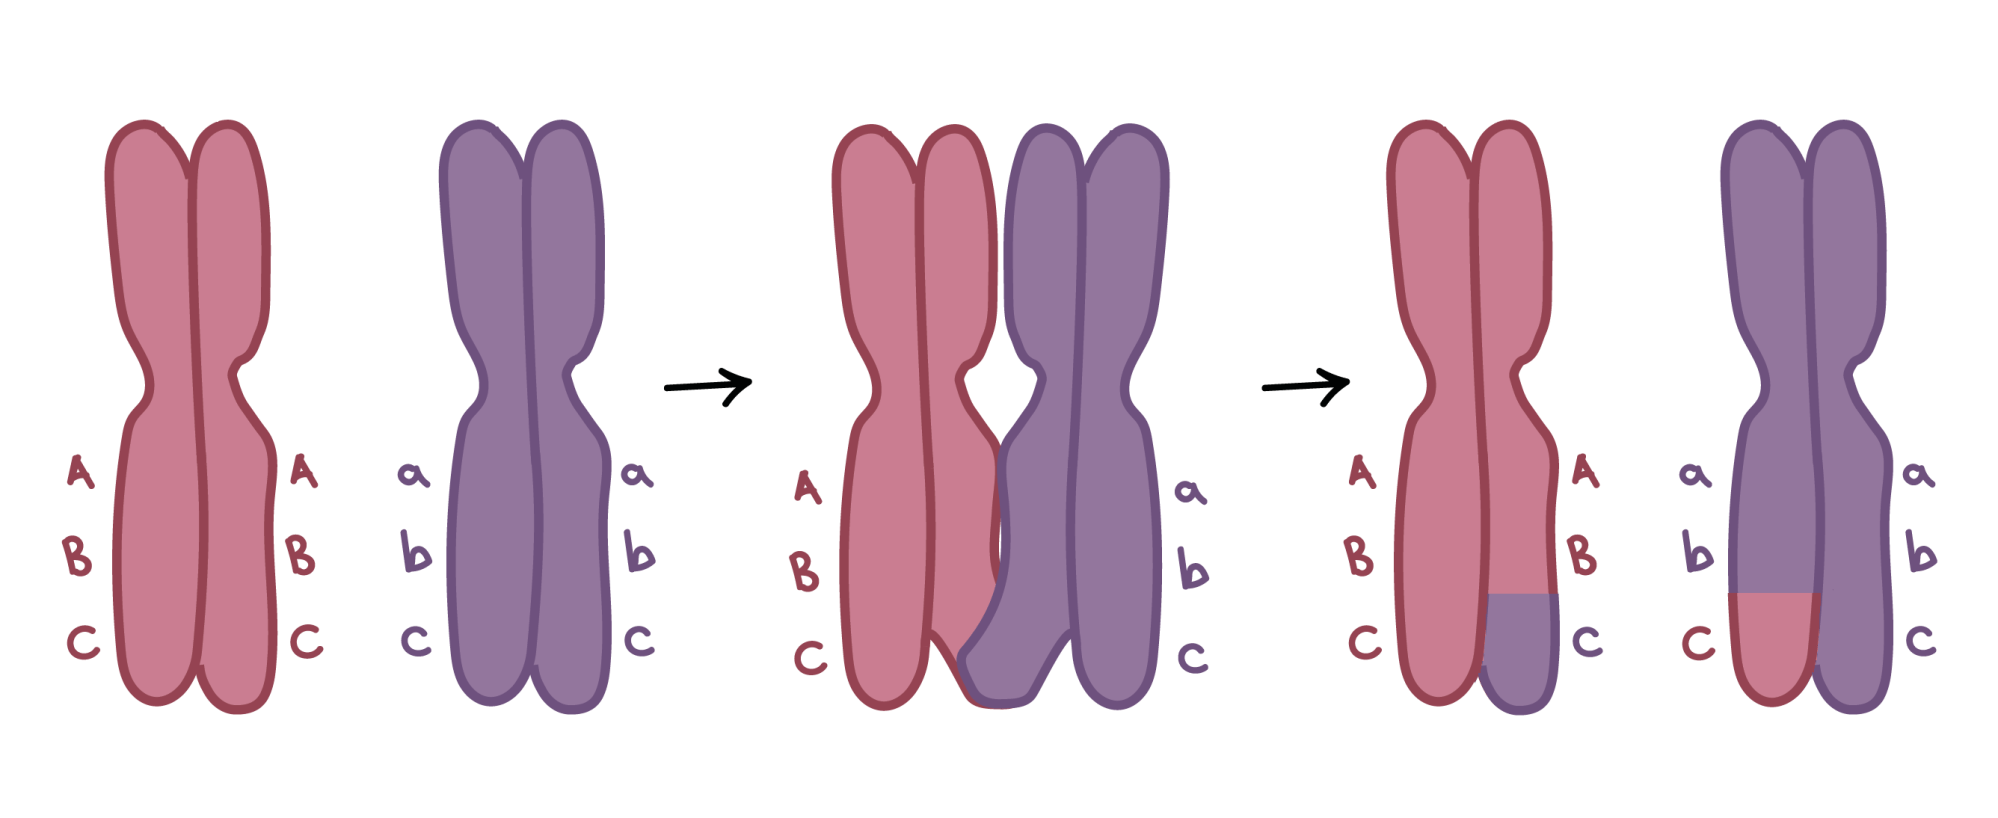 hight resolution of image of crossing over two homologous chromosomes carry different versions of three genes one